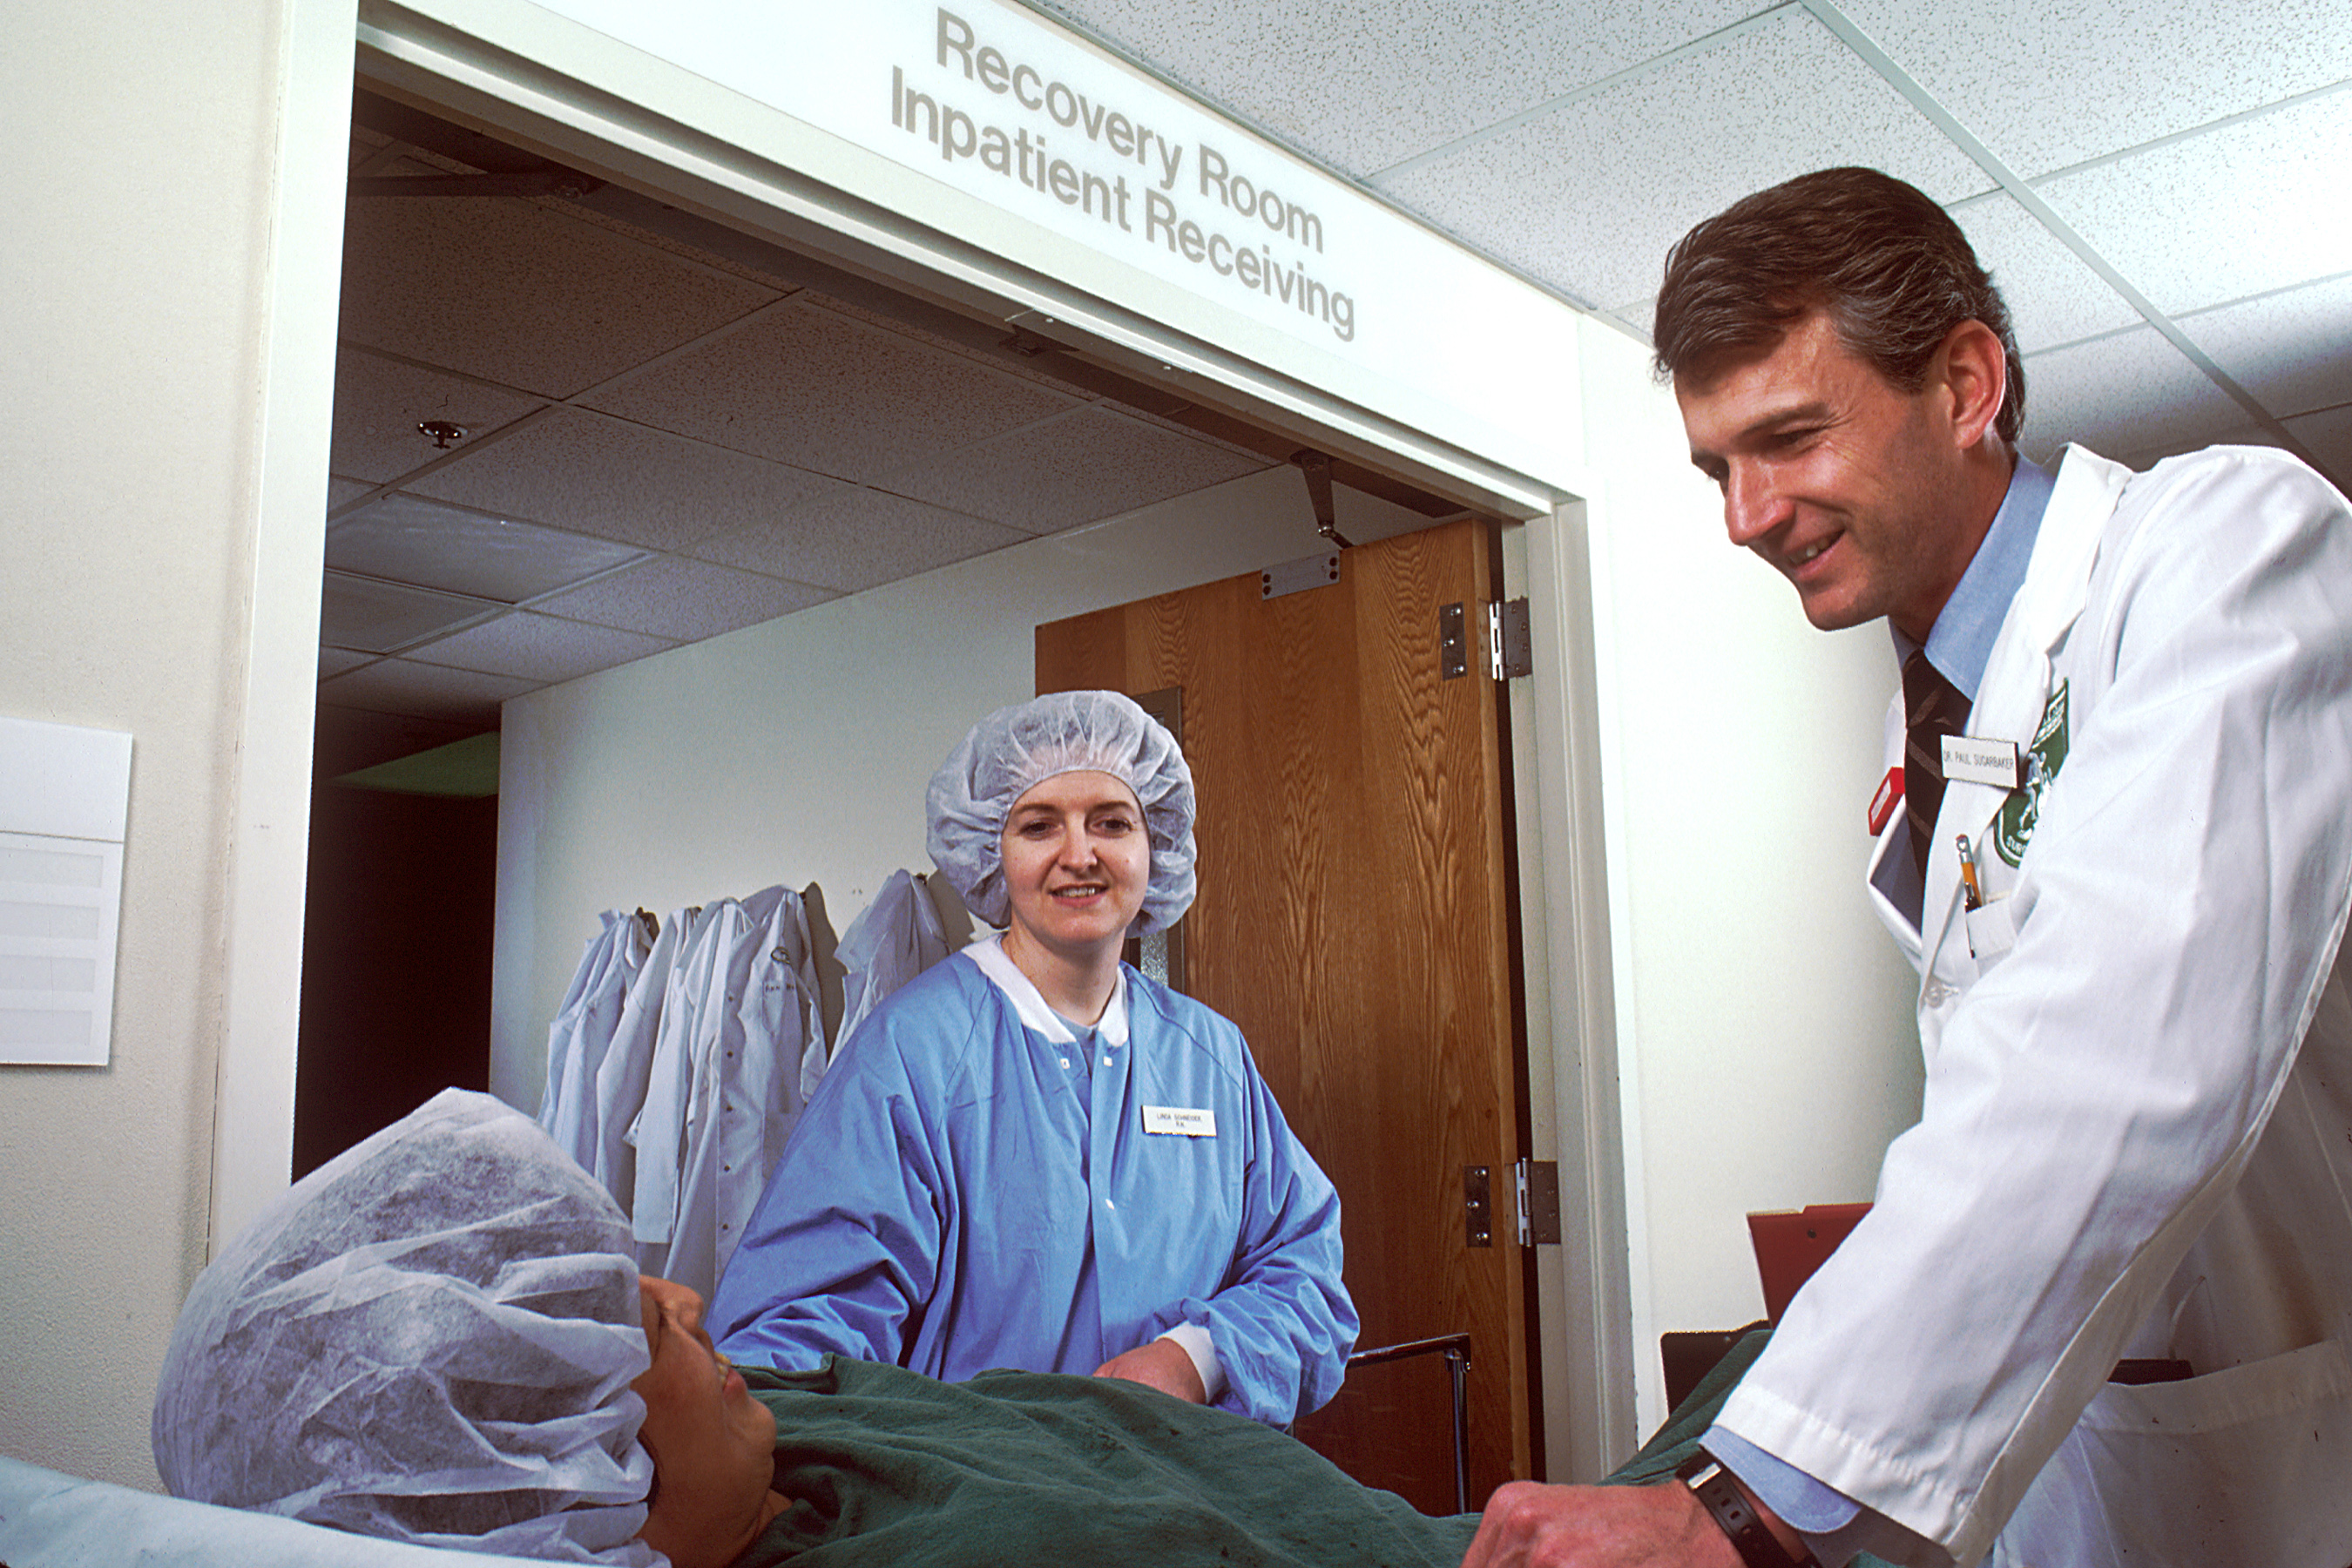 Male medical person in lab coat with female medical with surgery gown and hair covering next to patient on gurney in sheet and hair covering